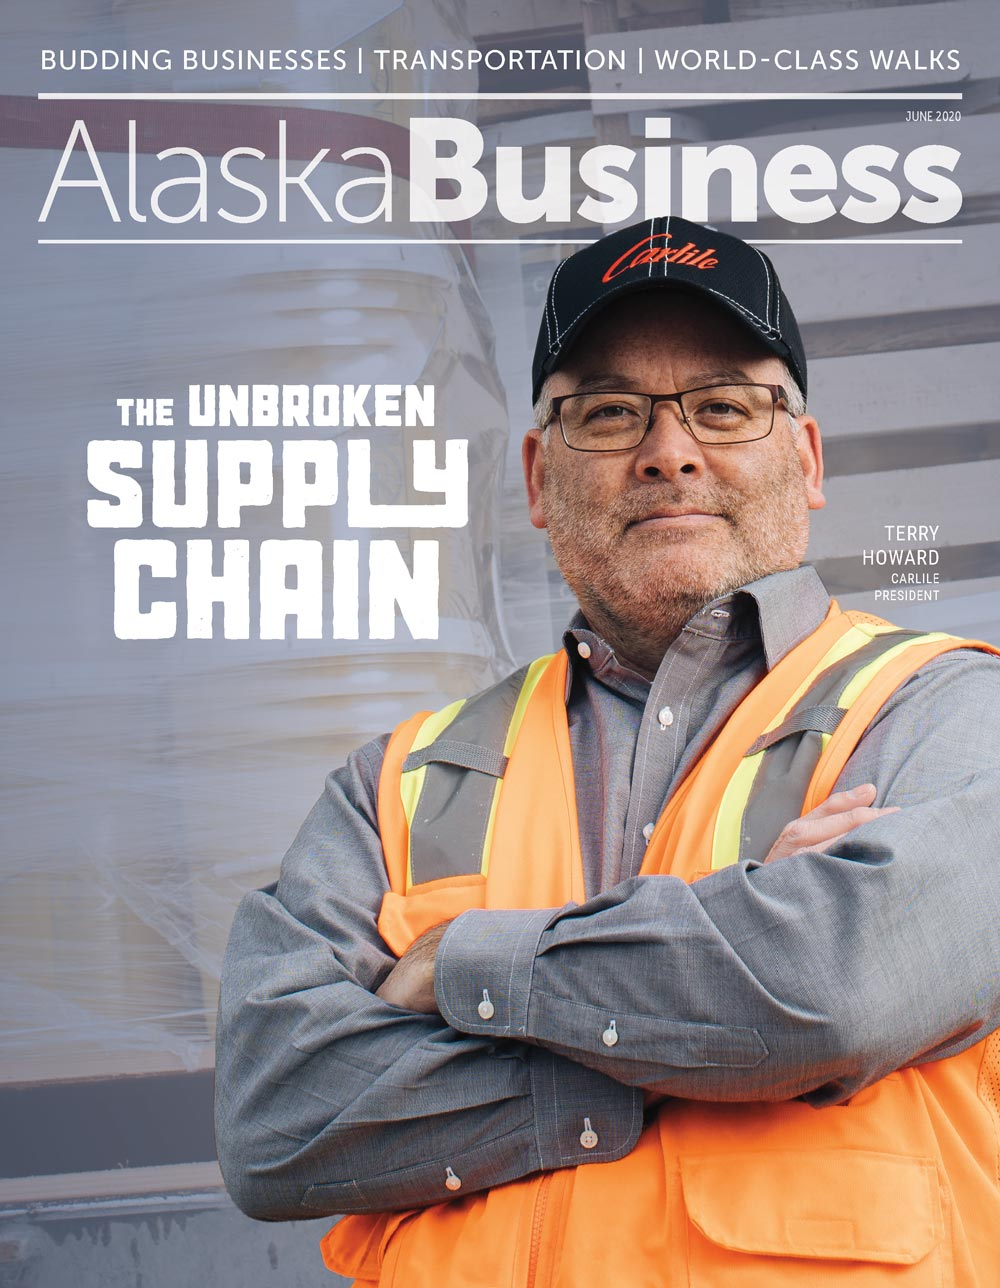 Alaska Business June 2020 cover